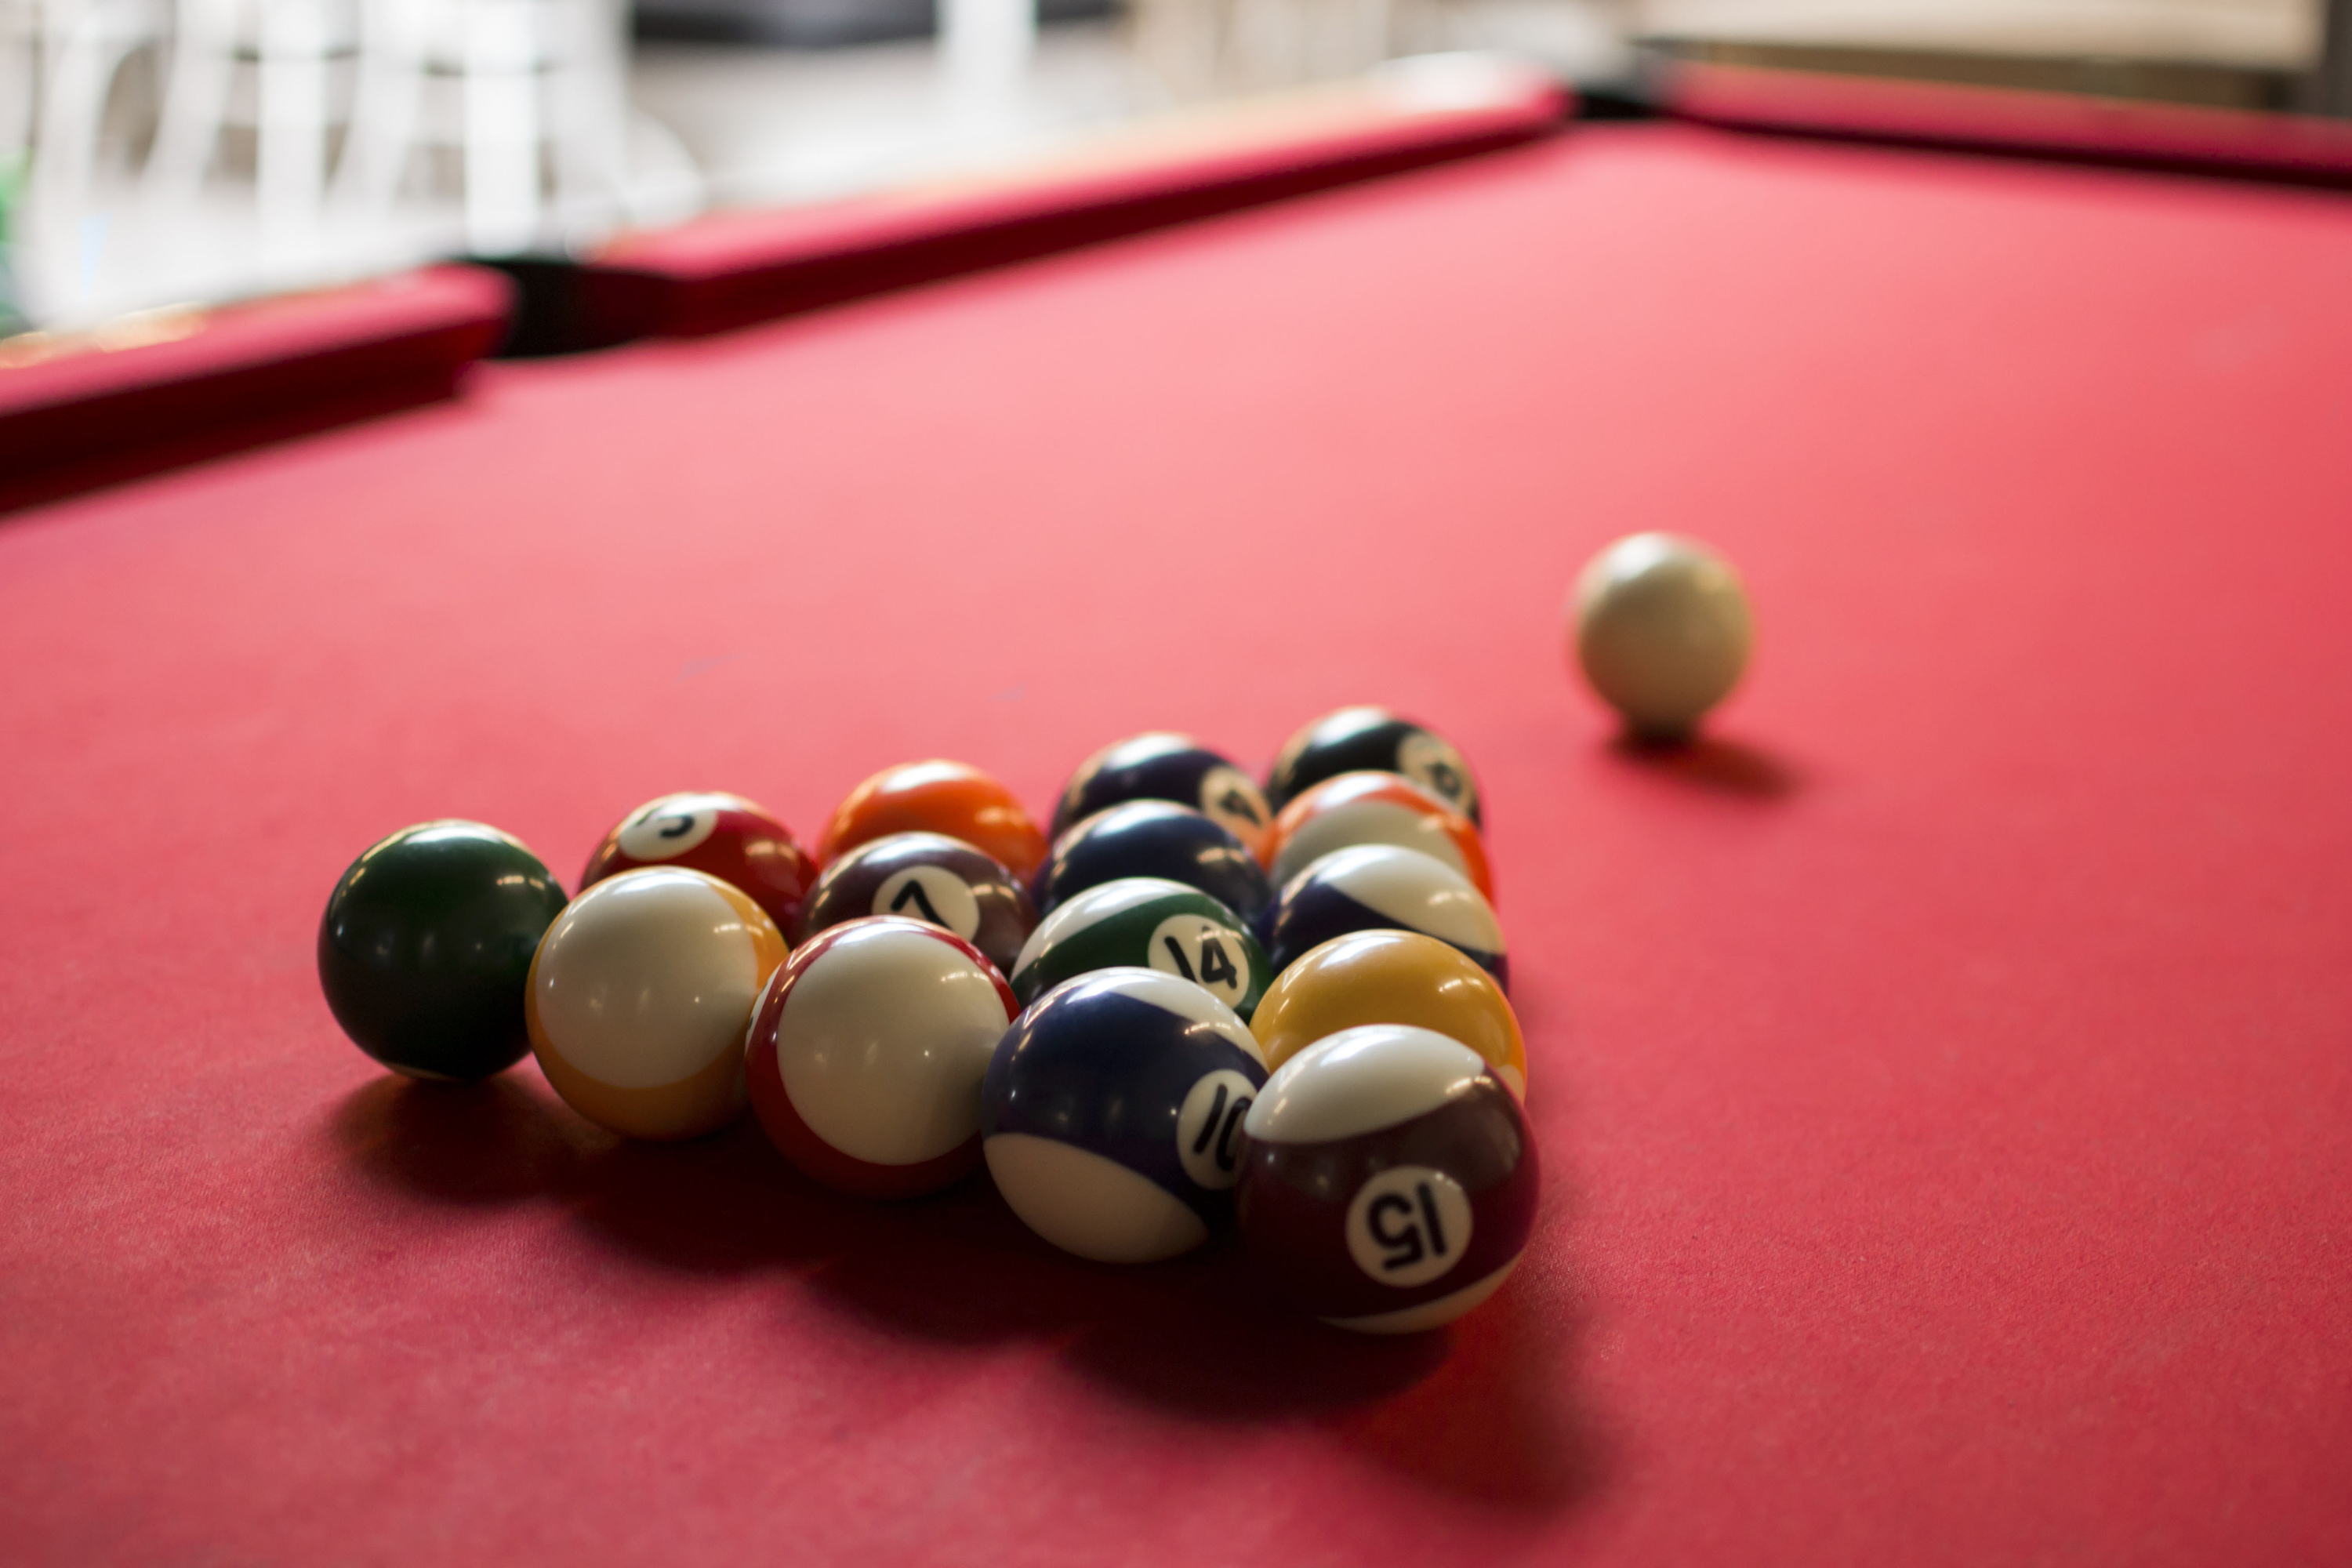 Pool Table Markings Measurements LIVESTRONGCOM - What is the official size of a pool table